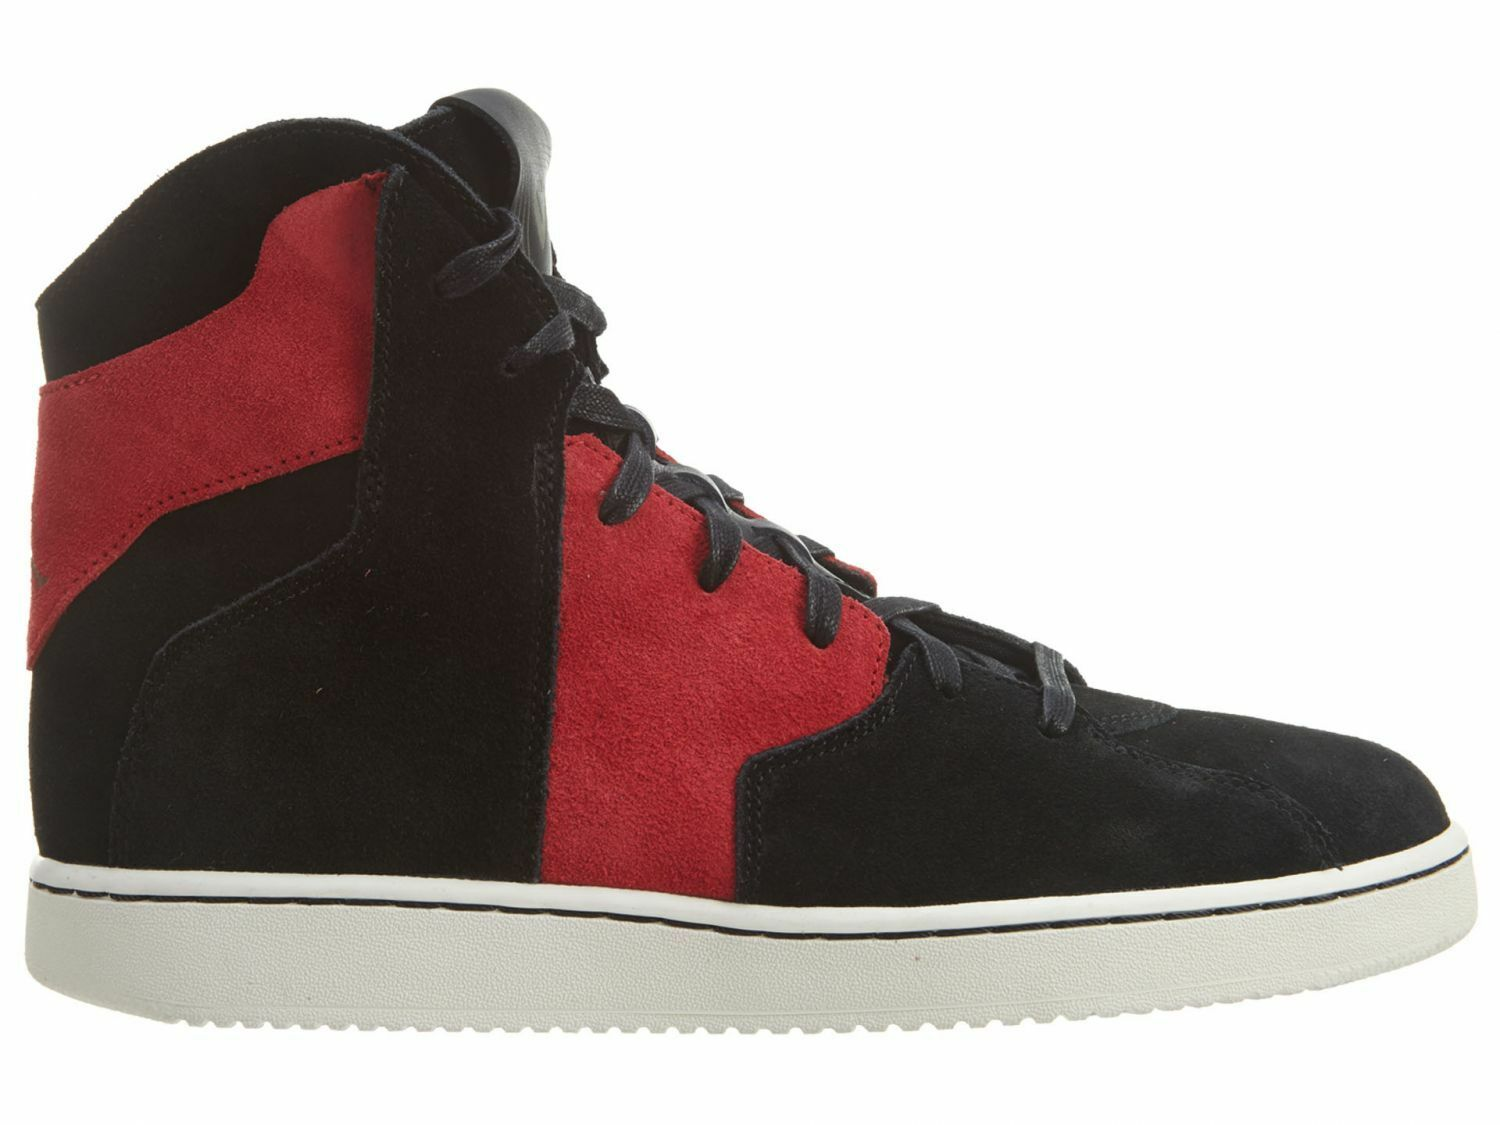 Jordan Westbrook 0.2 Banned Mens 854563-001 Black Gym Red Suede Shoes Comfortable Seasonal price cuts, discount benefits